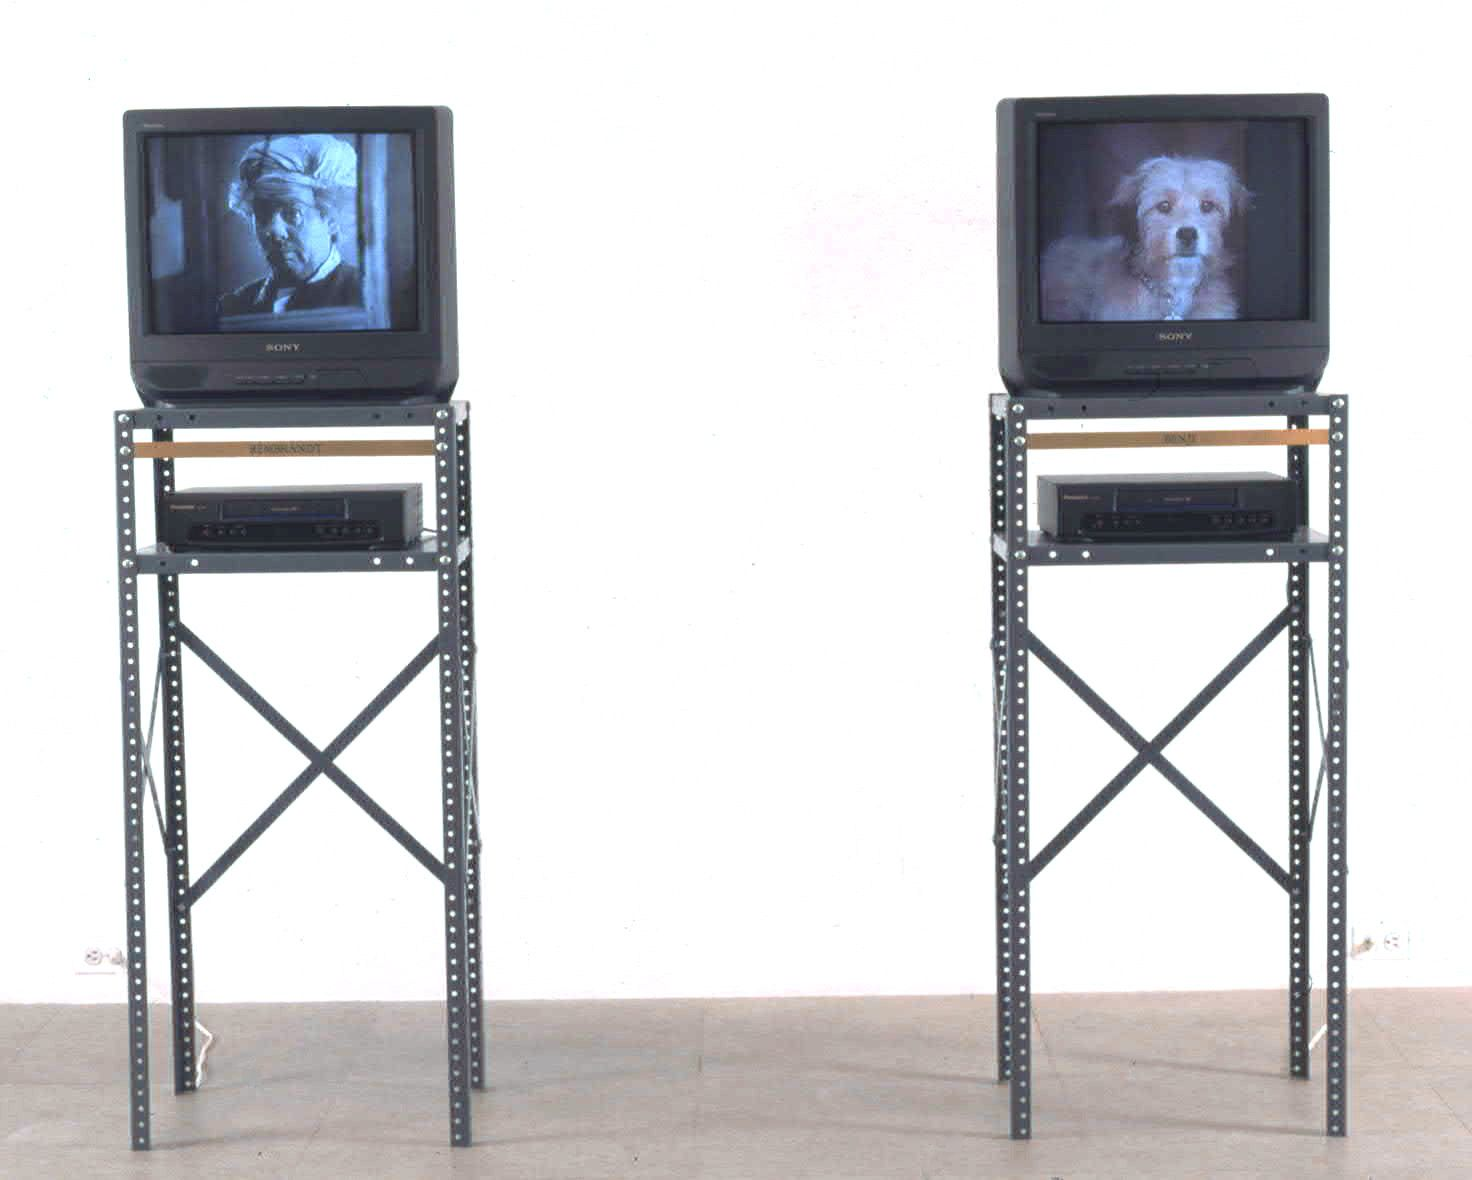 Jonathan Horowitz, Dot, 1998, 2 VHS tapes and 2 metal shelves, dimensions variable